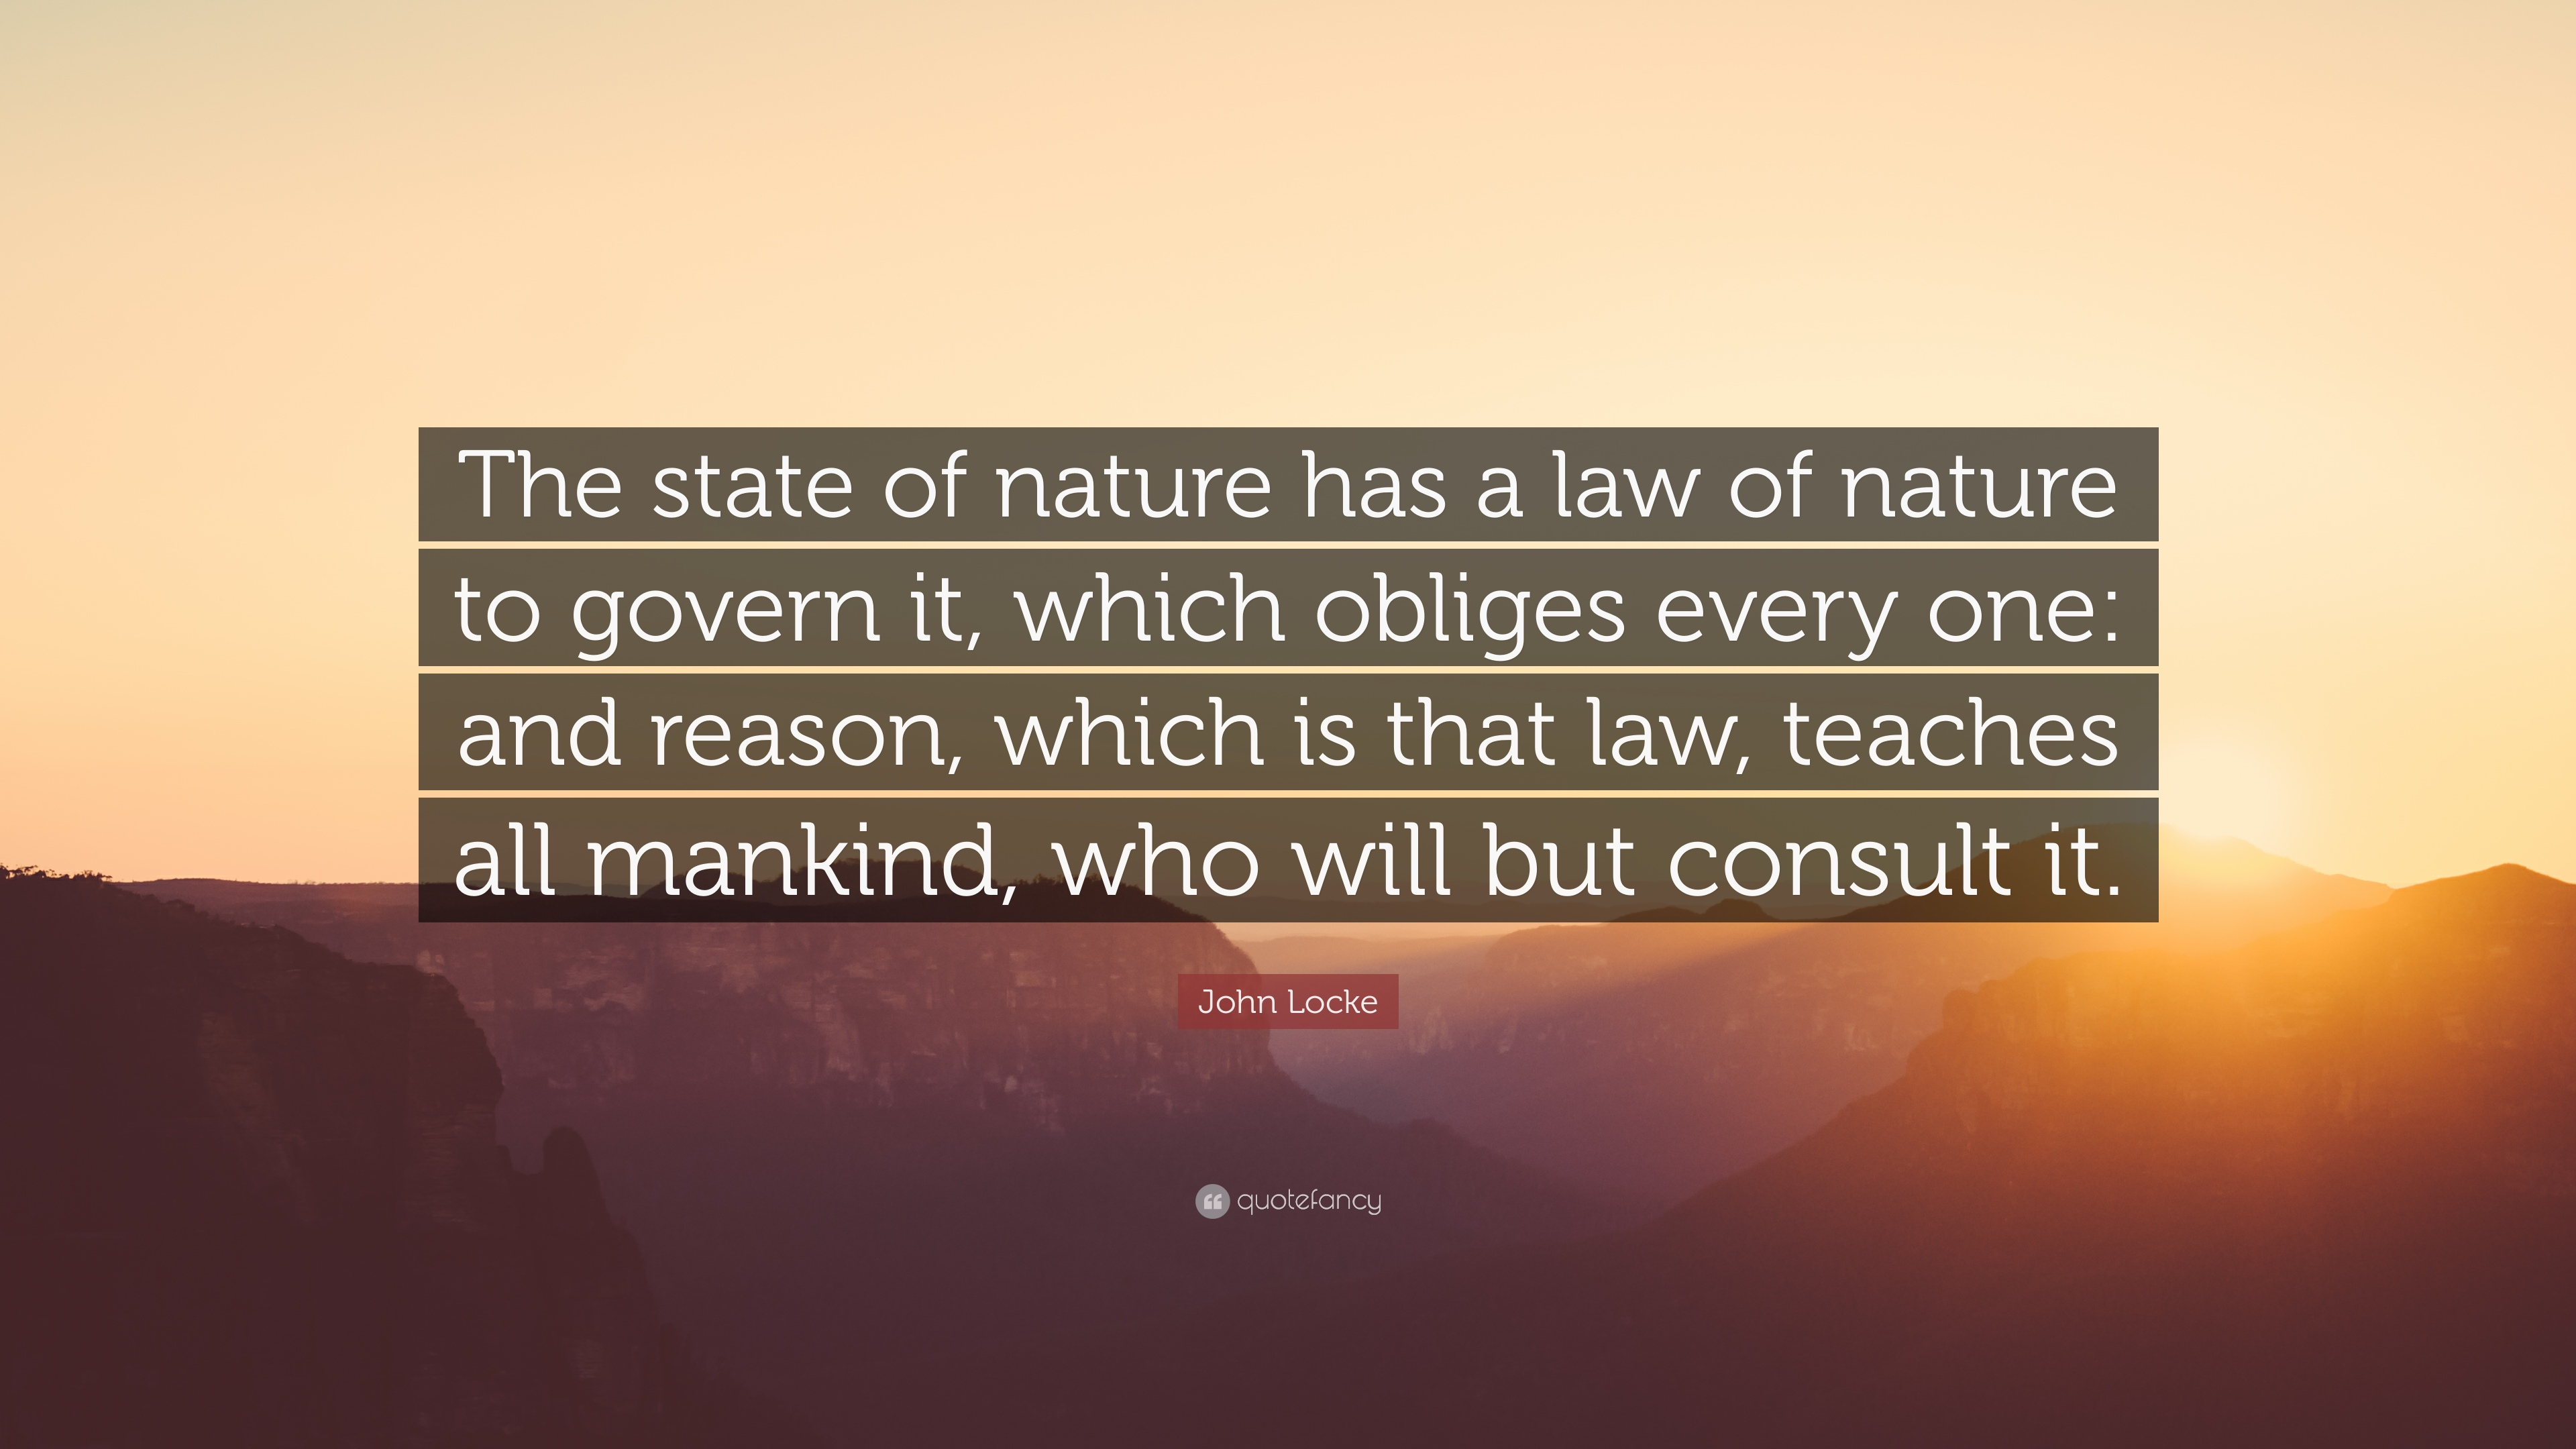 the state of nature according to john locke essay John locke kept more optimistic beliefs in the state of nature men mostly kept their promises and honored their obligations, and believed man is reasonable rather than selfish as according to hobbes.